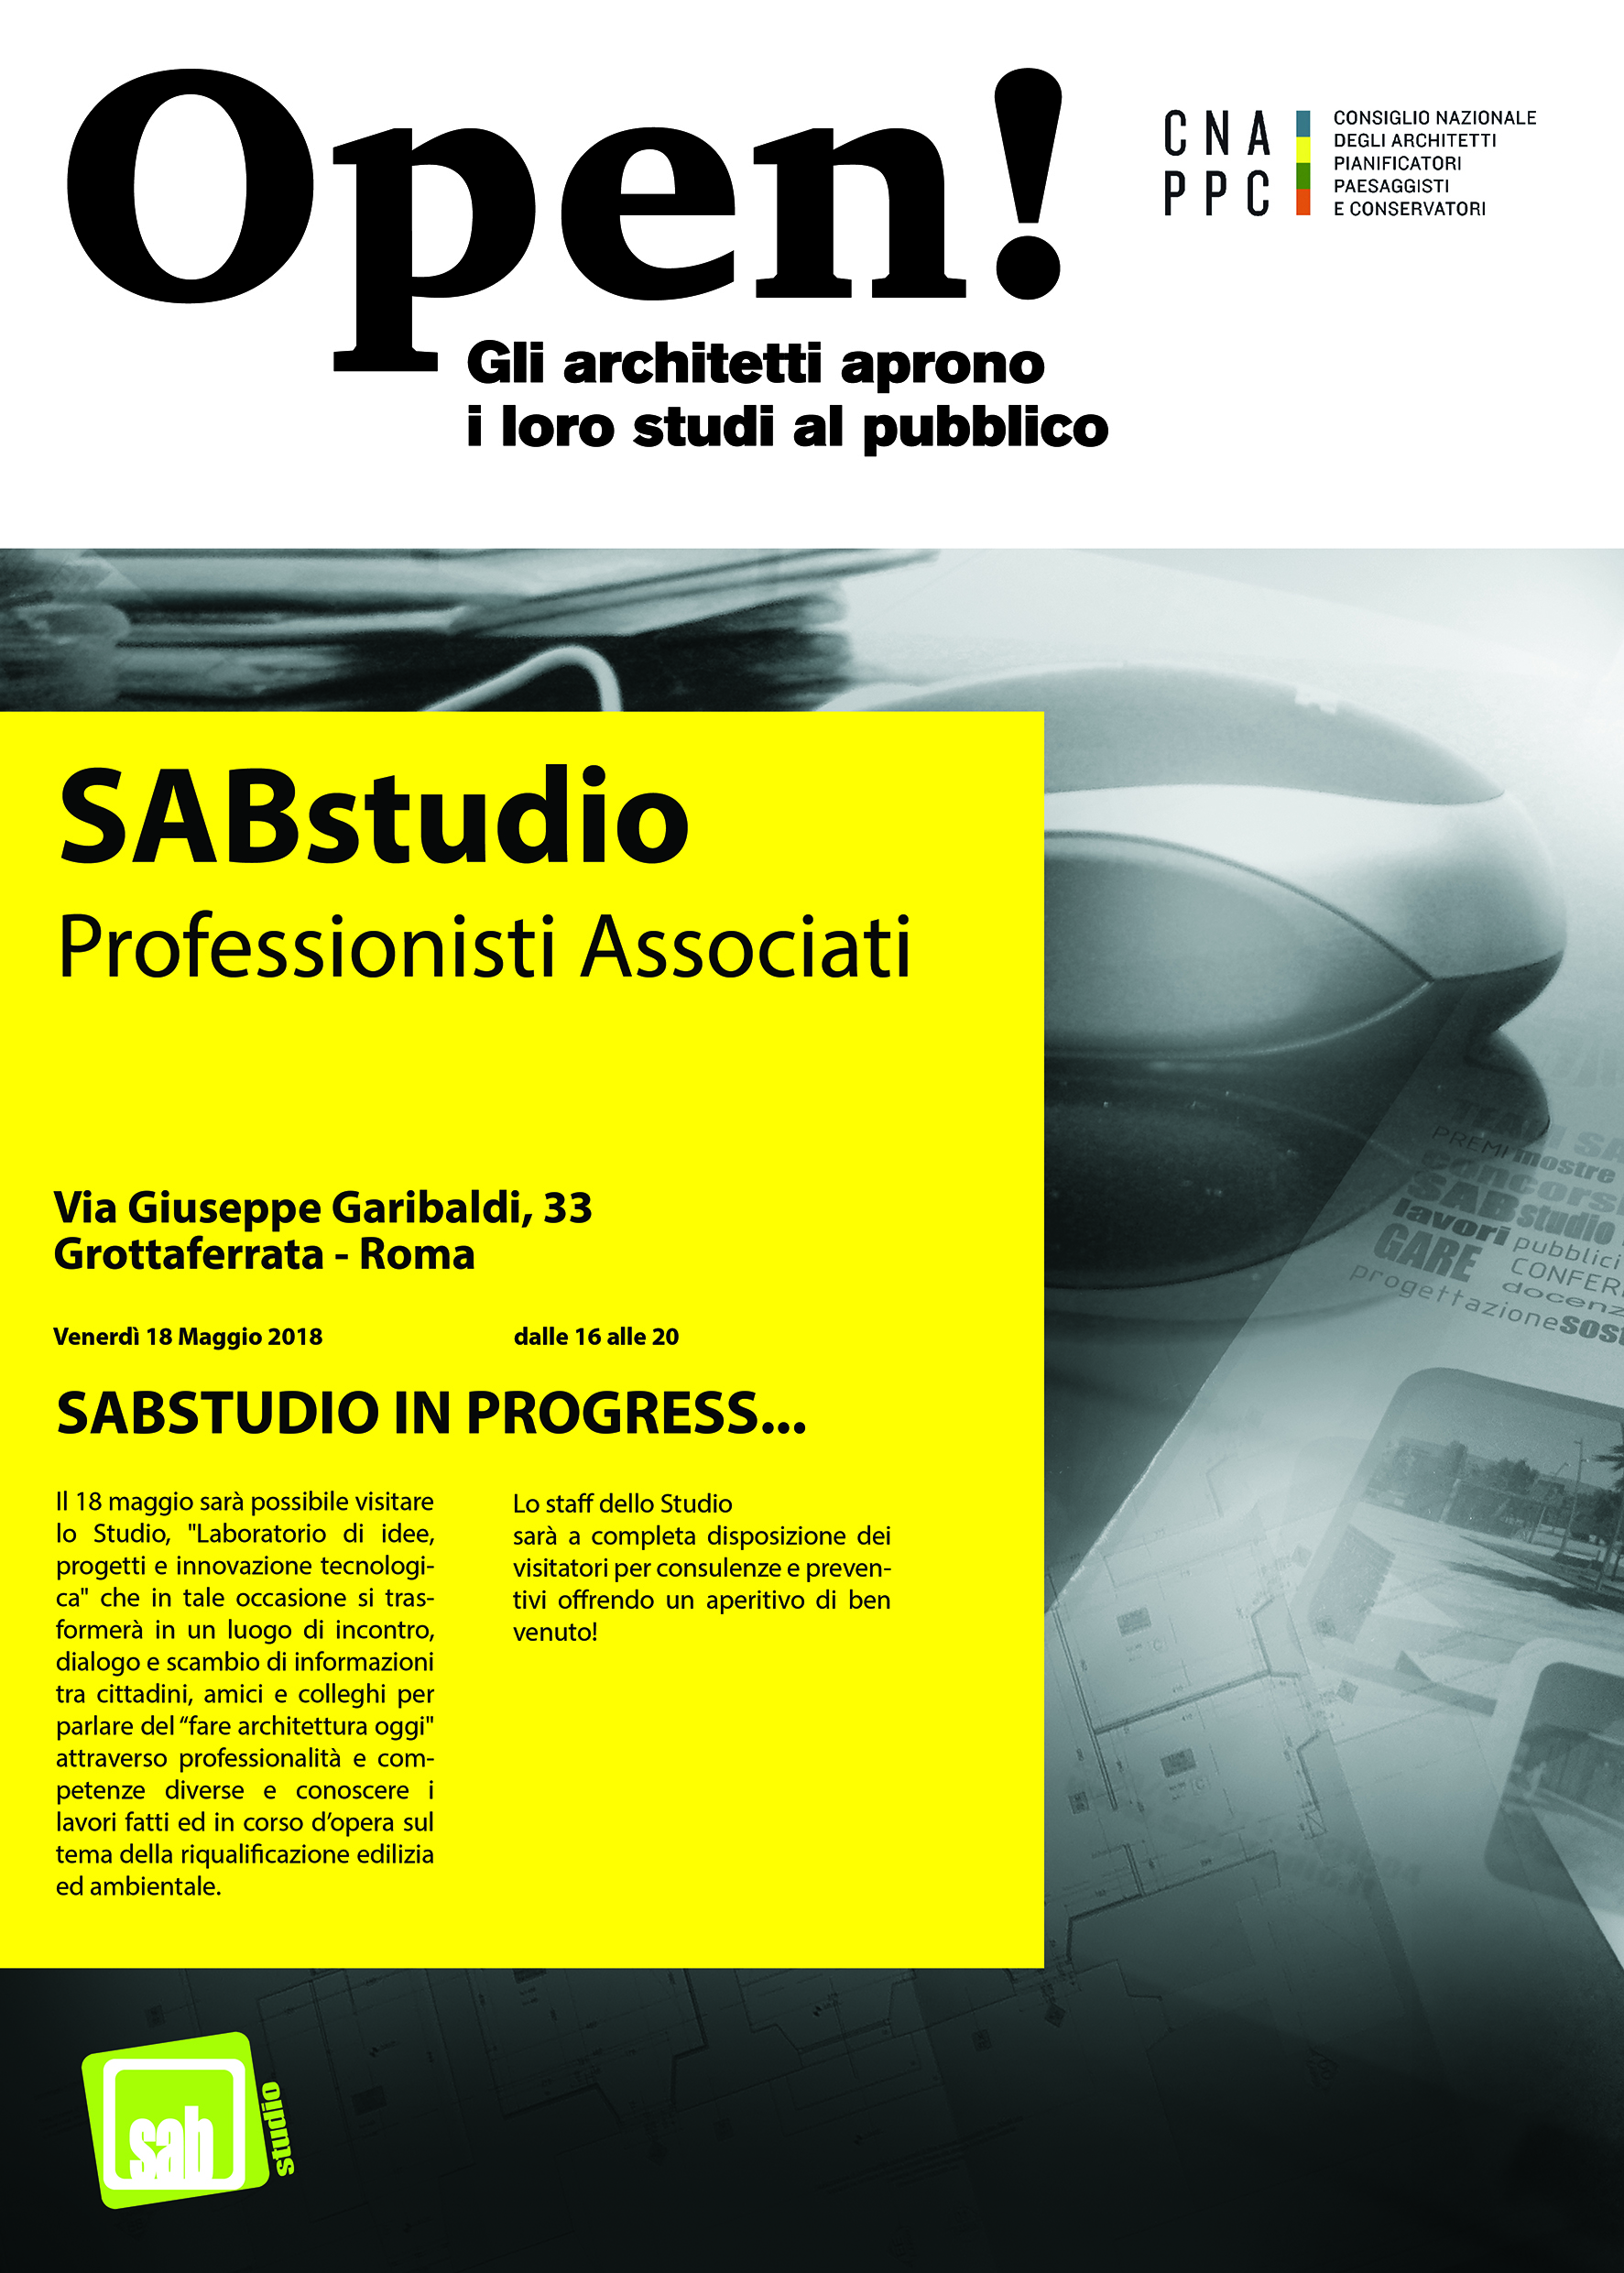 OPEN SABstudio 2018